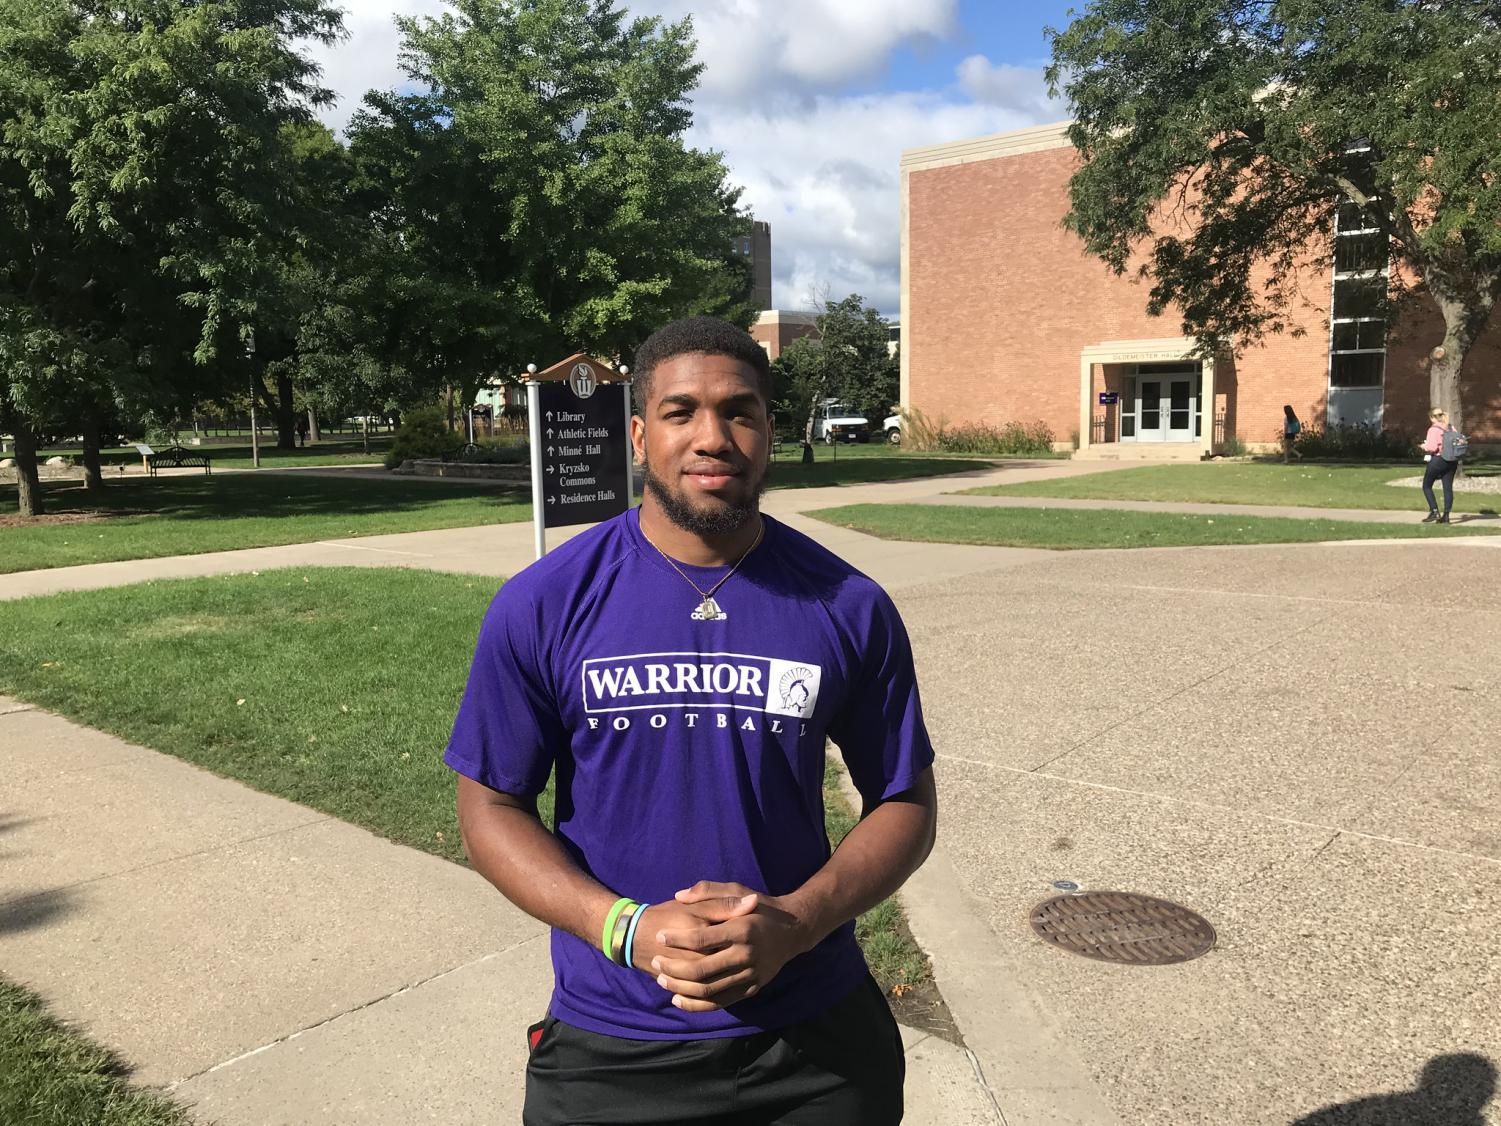 Senior Running Back Javian Roebuck (#32) posed for photos Friday, September 6th before the big game tomorrow, September 7th,  against Wayne State College.